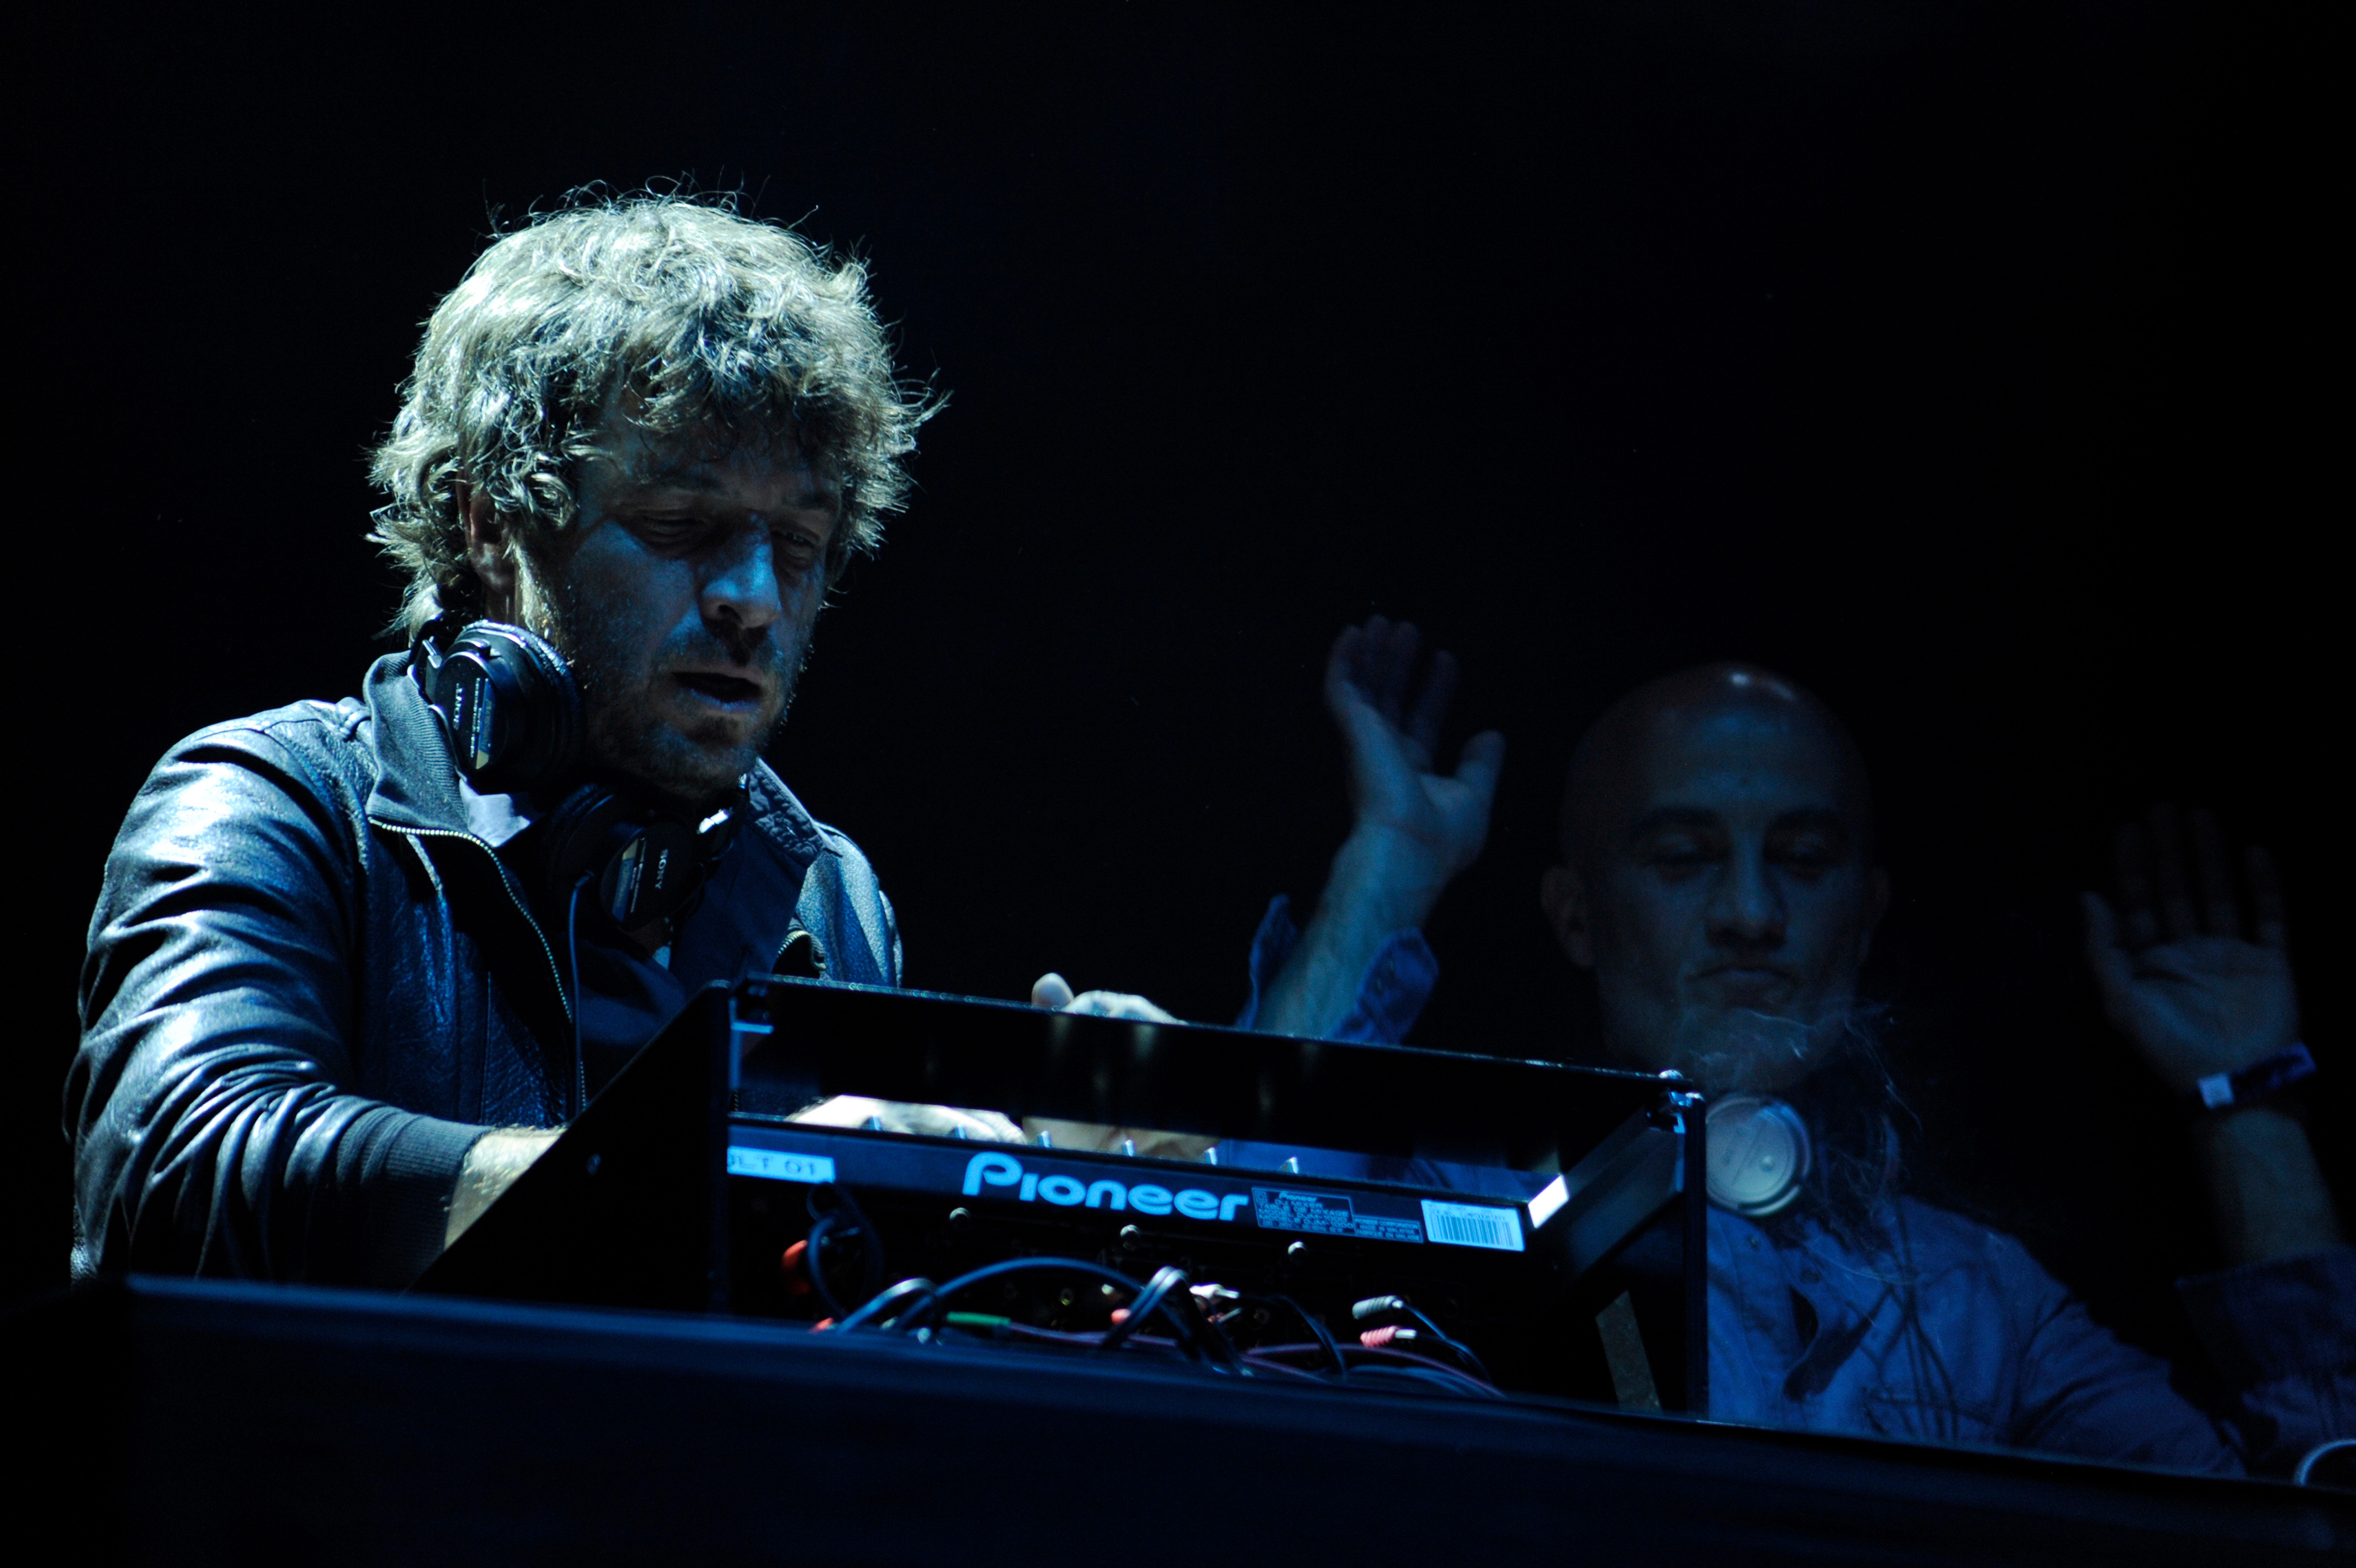 Philippe Zdar the founding member of Cassius died on Wednesday in an accident